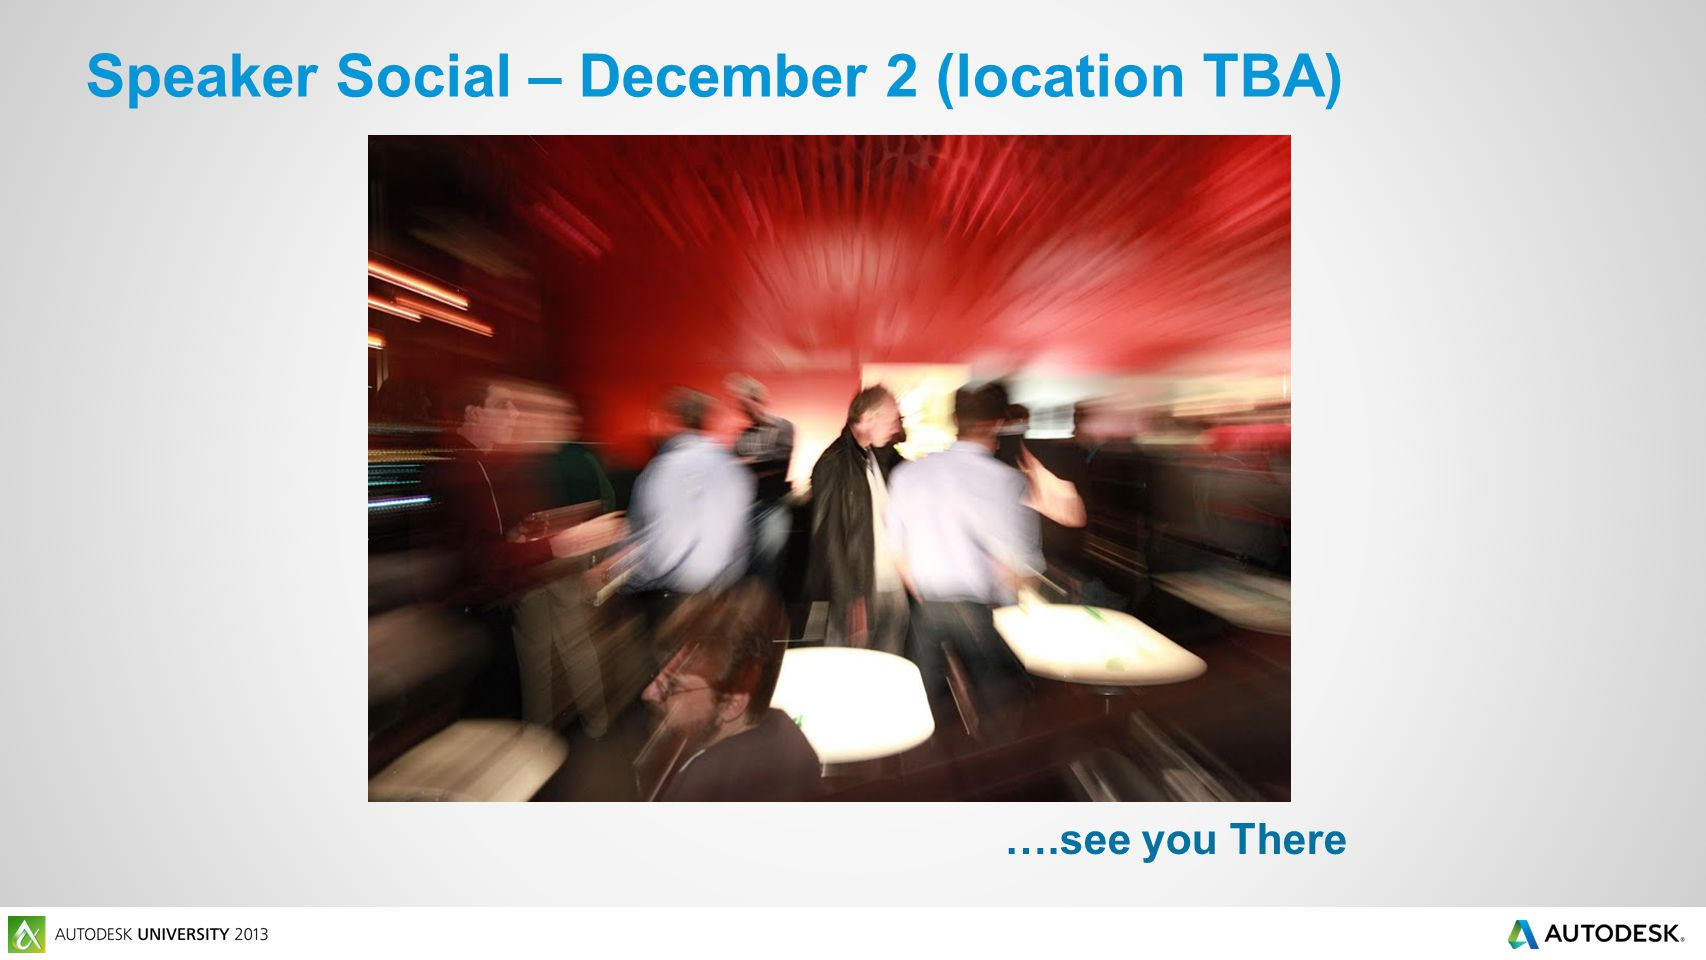 Speaker Social – December 2 (location TBA) ….see you There